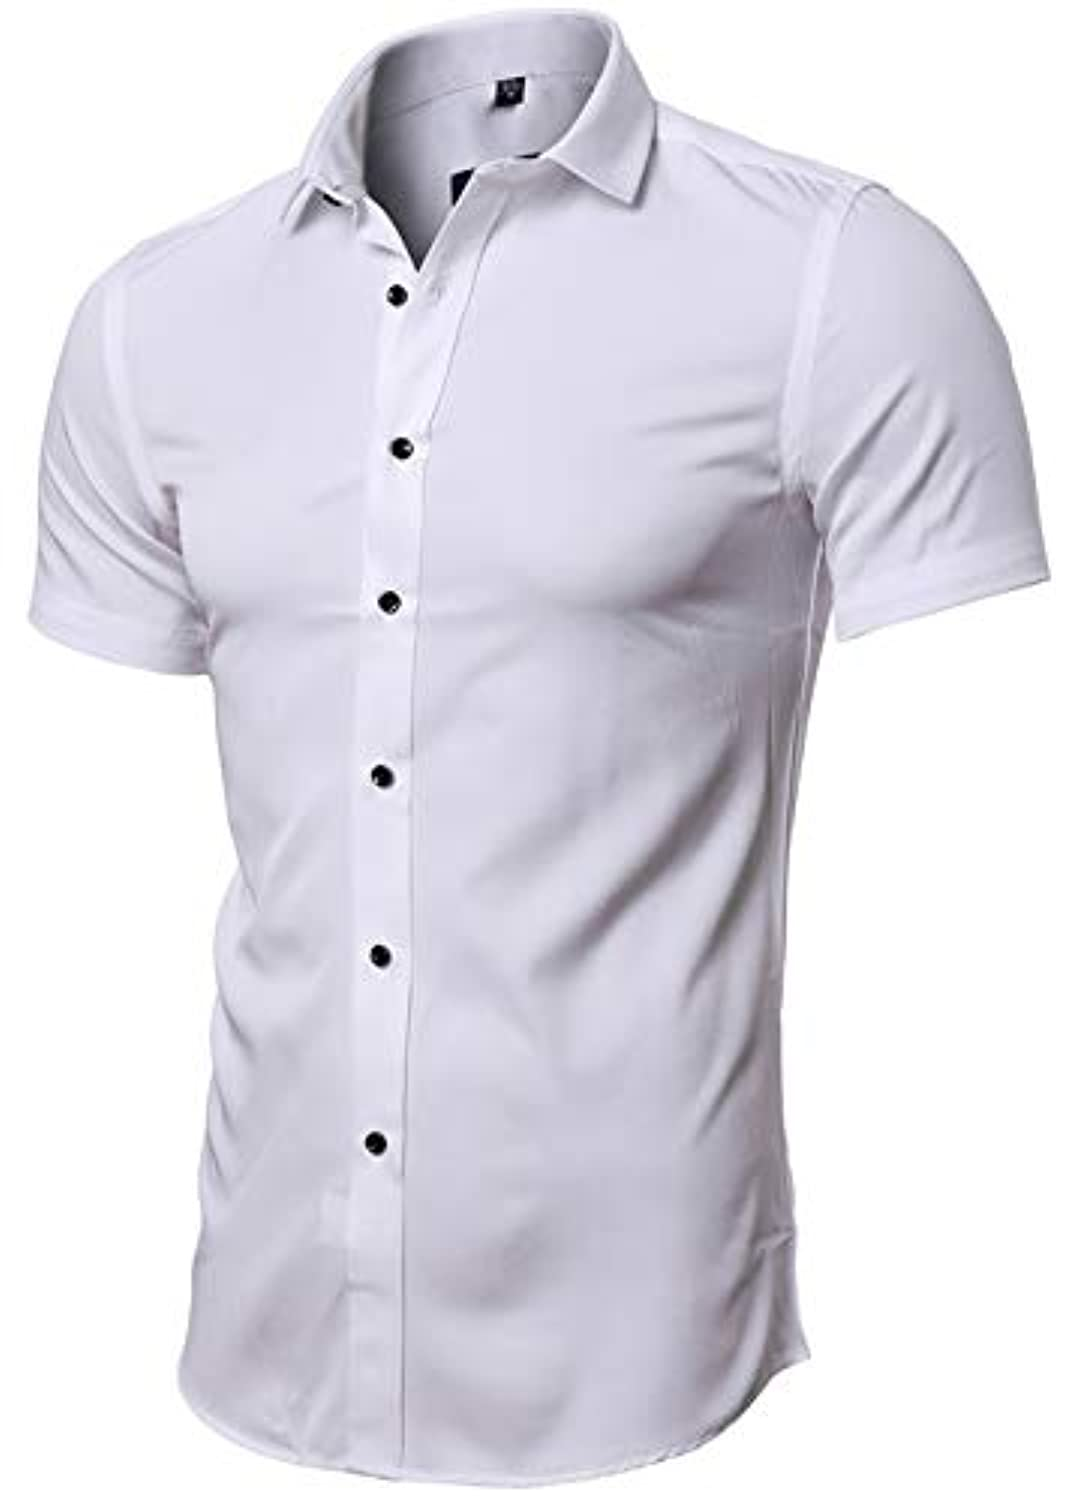 Mens Dress Shirts, Fitted Bamboo Fiber Short Sleeve Elastic Casual Button Down Shirts